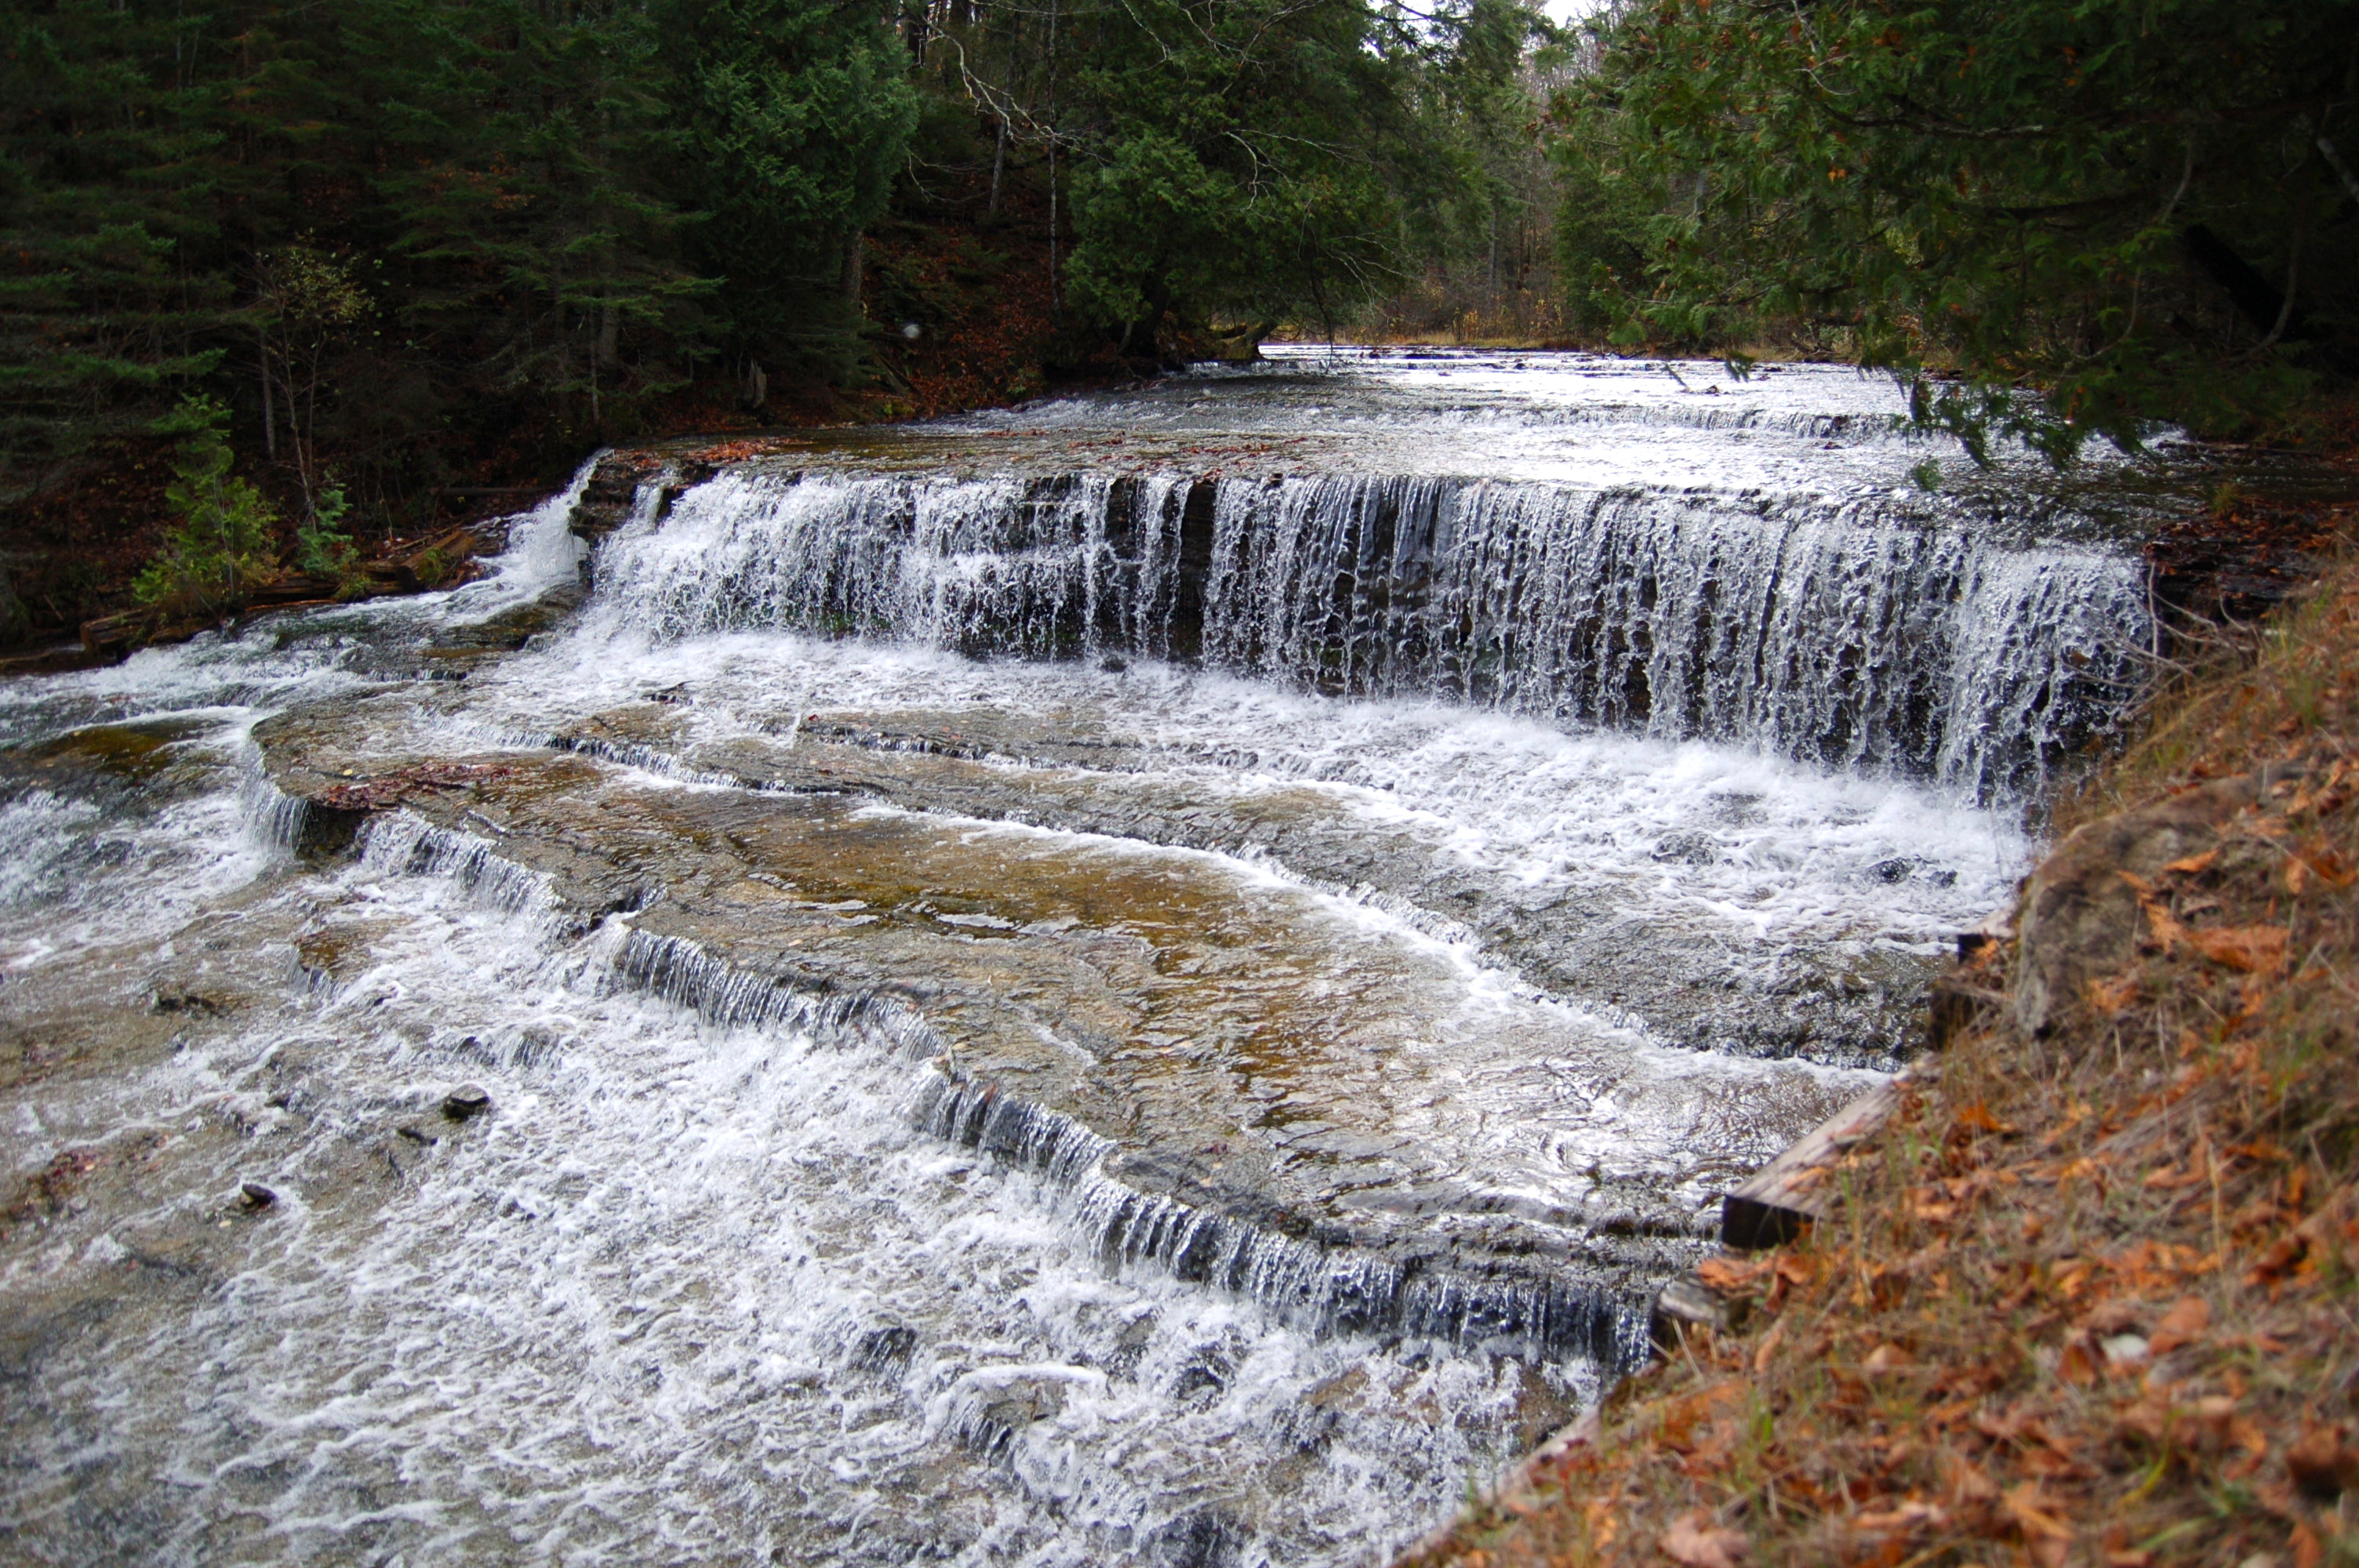 Au Train Falls - Two Scenic Waterfalls on the Au Train River in Alger County